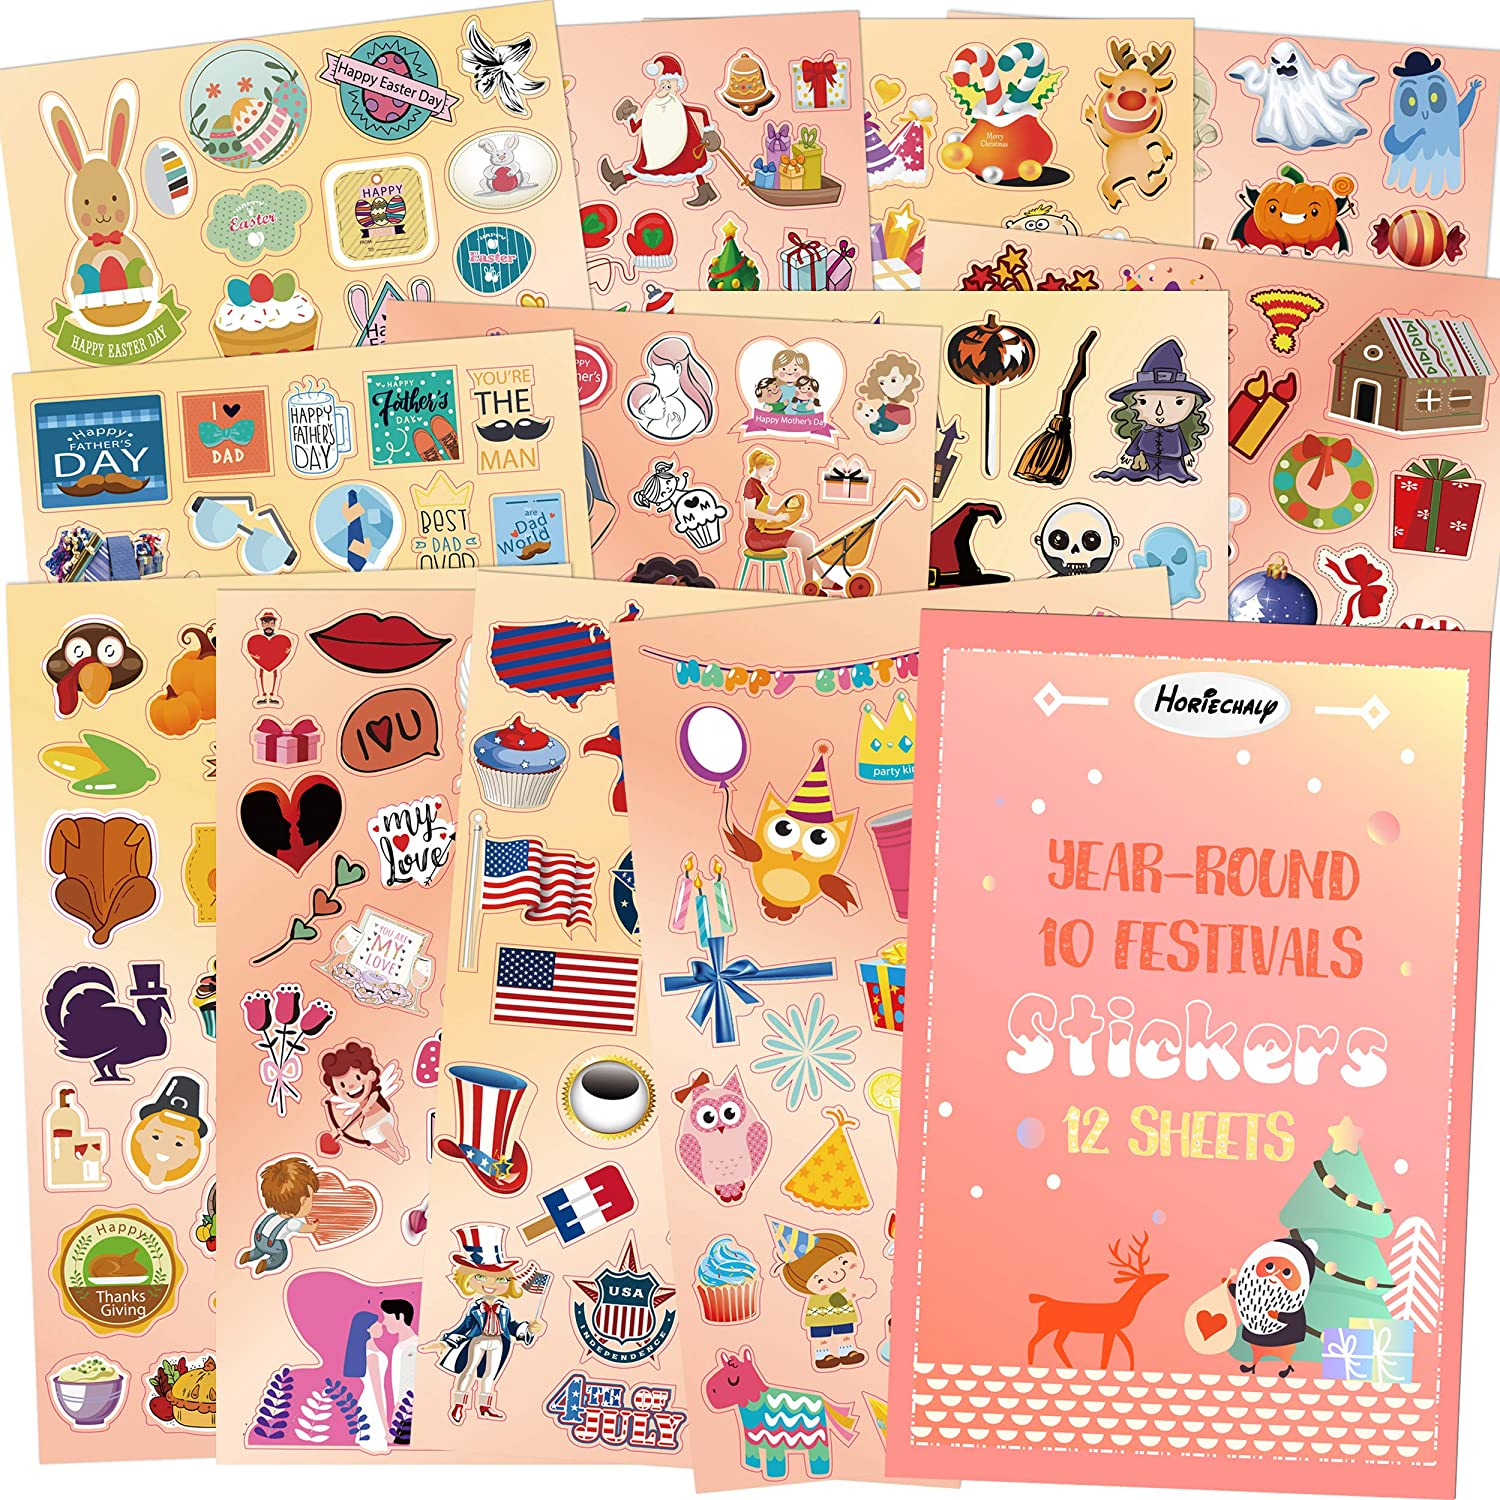 HORIECHALY Holiday Stickers Sheets,Seasonal Year-Round Art Planner Stickers for Scrapbook Calendar Thanksgi Valentine/'s Day Easter Birthday Fathers/' Day 12 Sheets with 10 Festivals Mothers/' Day